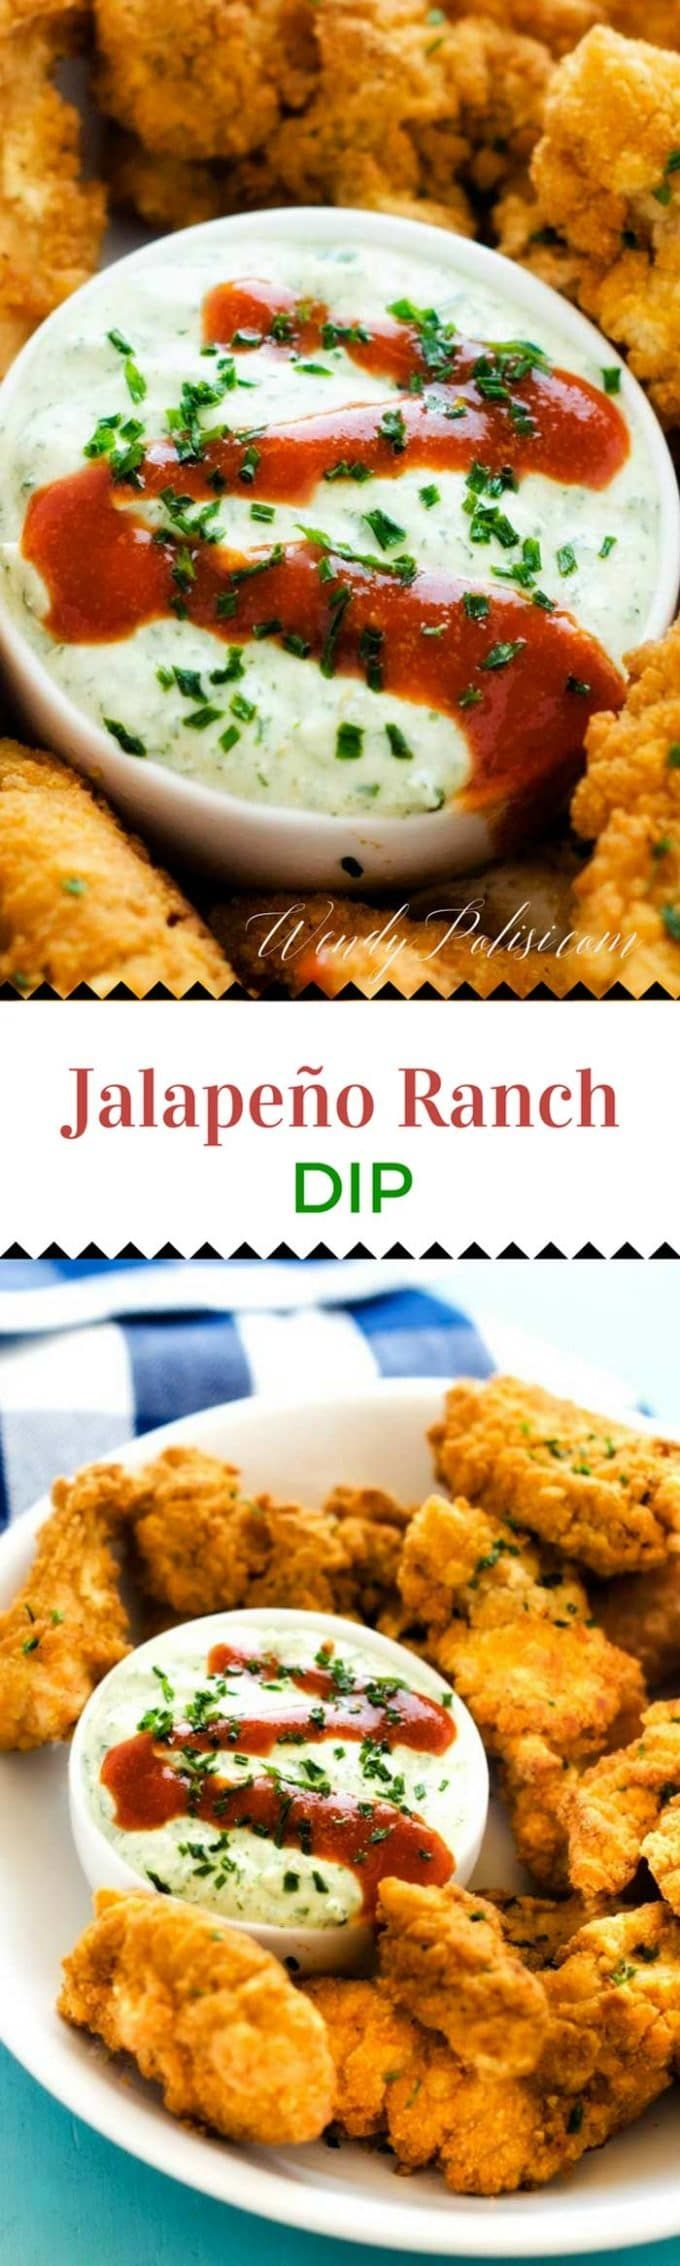 Jalapeño Ranch Dip via @wendypolisi